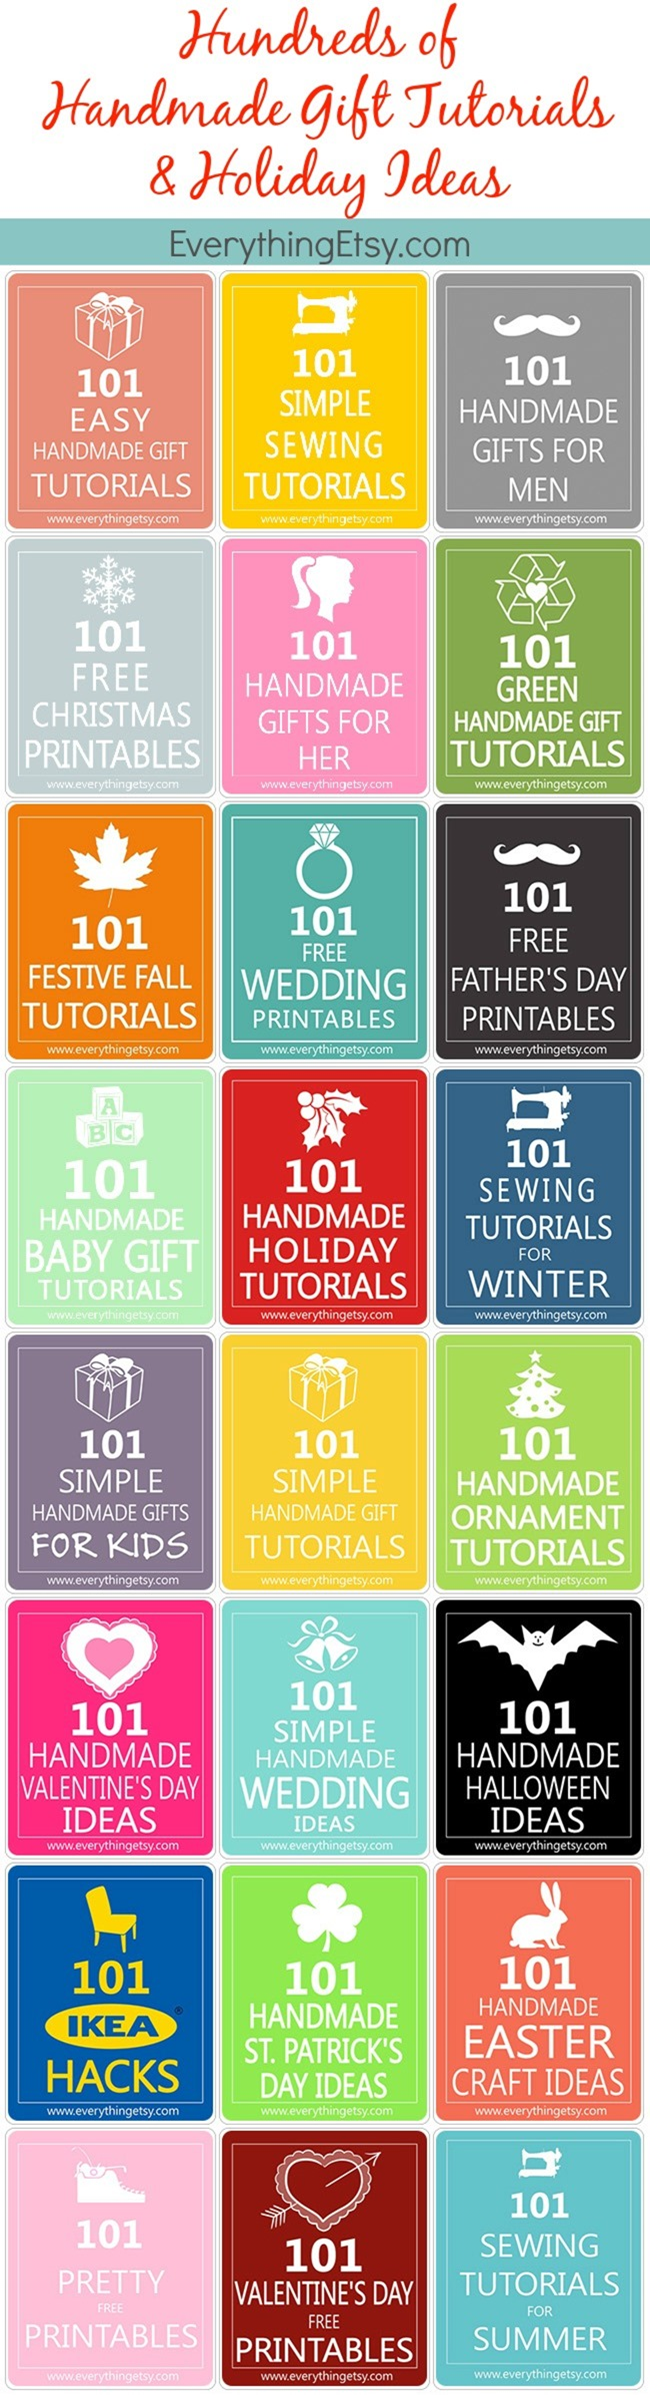 Handmade Gift Tutorials - Hundreds of Them!  EverythingEtsy